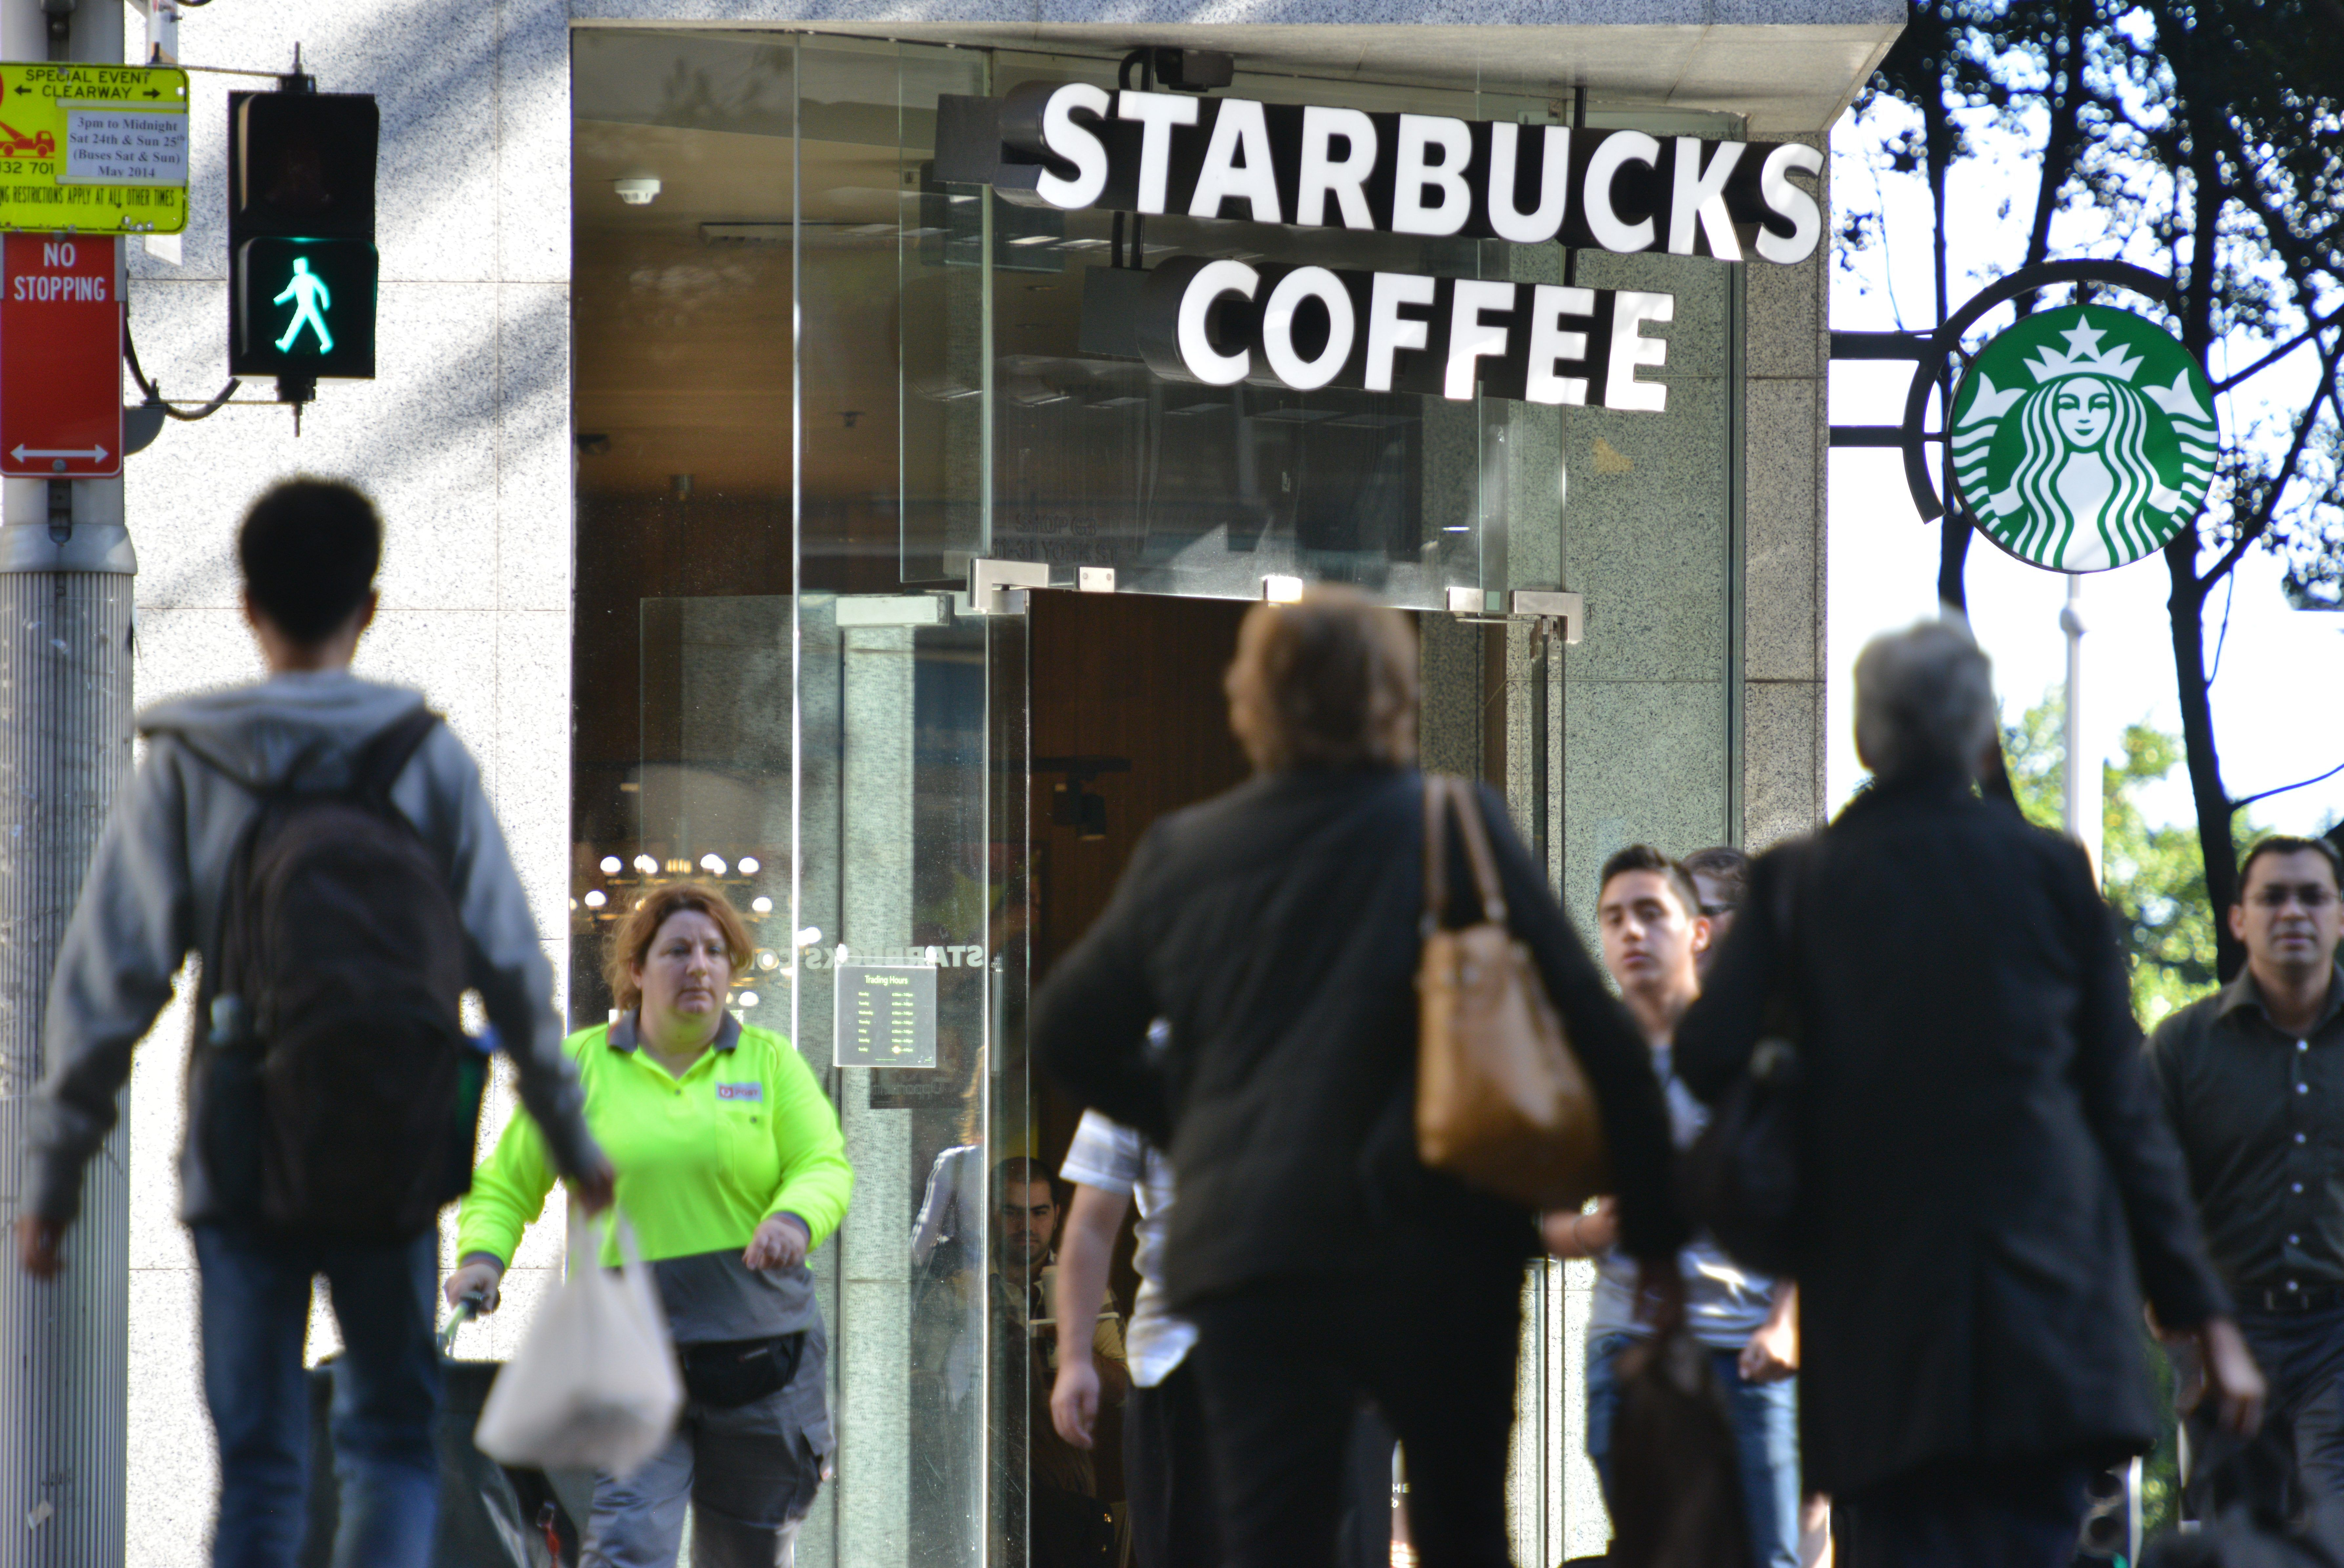 Columbus Day 2014: What's Open or Closed? Starbucks, Kroger, Best Buy, Home Depot, Walgreens, Rite Aid, CVS Pharmacies, Albertsons, McDonald's, Burger King, and Dunkin' Donuts